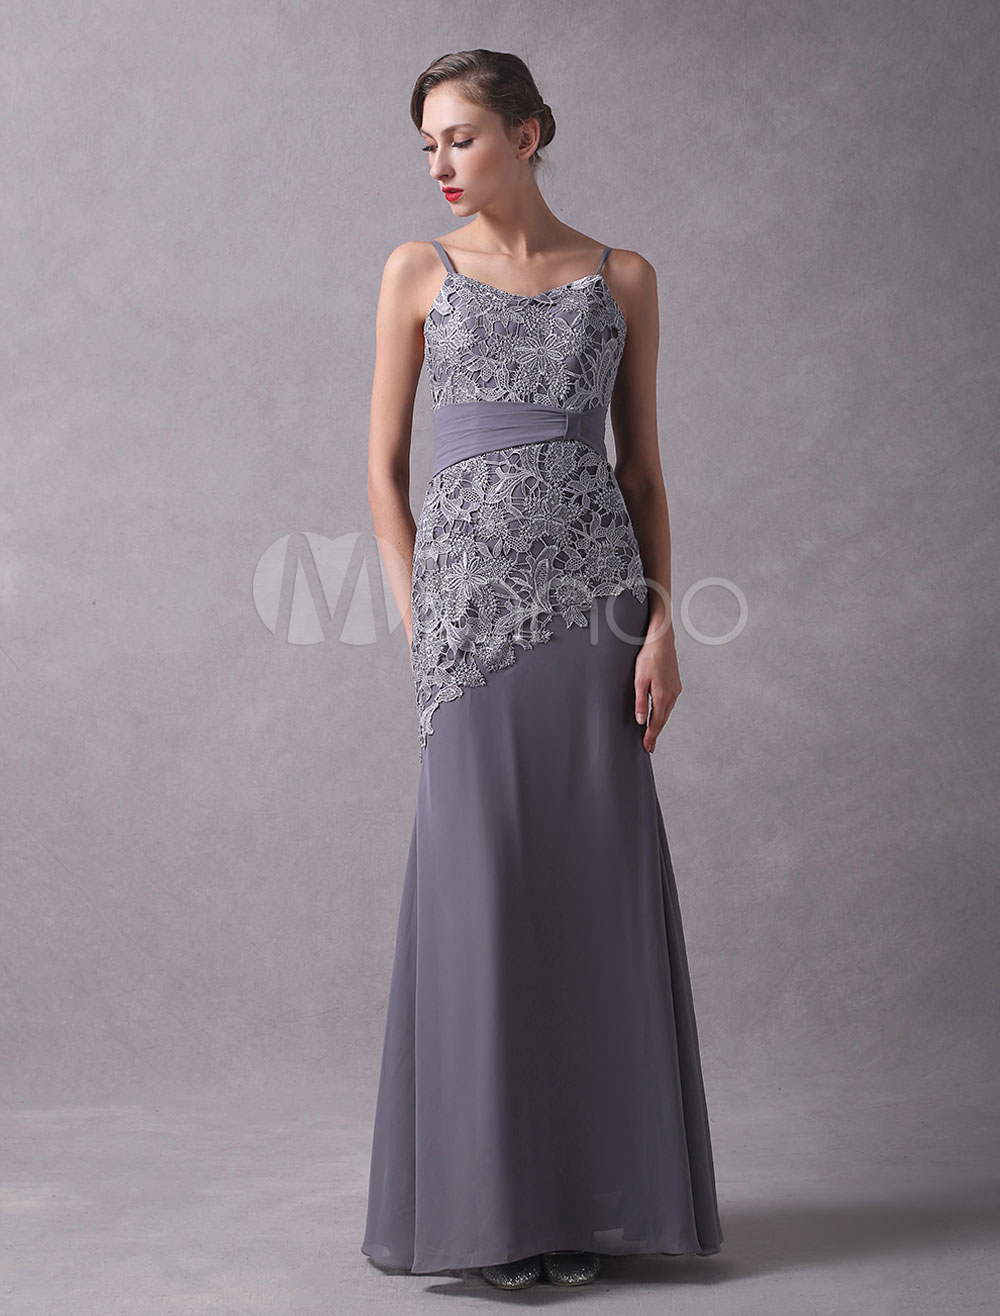 Buy Wedding Guest Dresses Grey Two Piece Mother Of The Bride Dress Lace Chiffon Straps Floor Length Wedding Party Dress With Jacket for $131.74 in Milanoo store